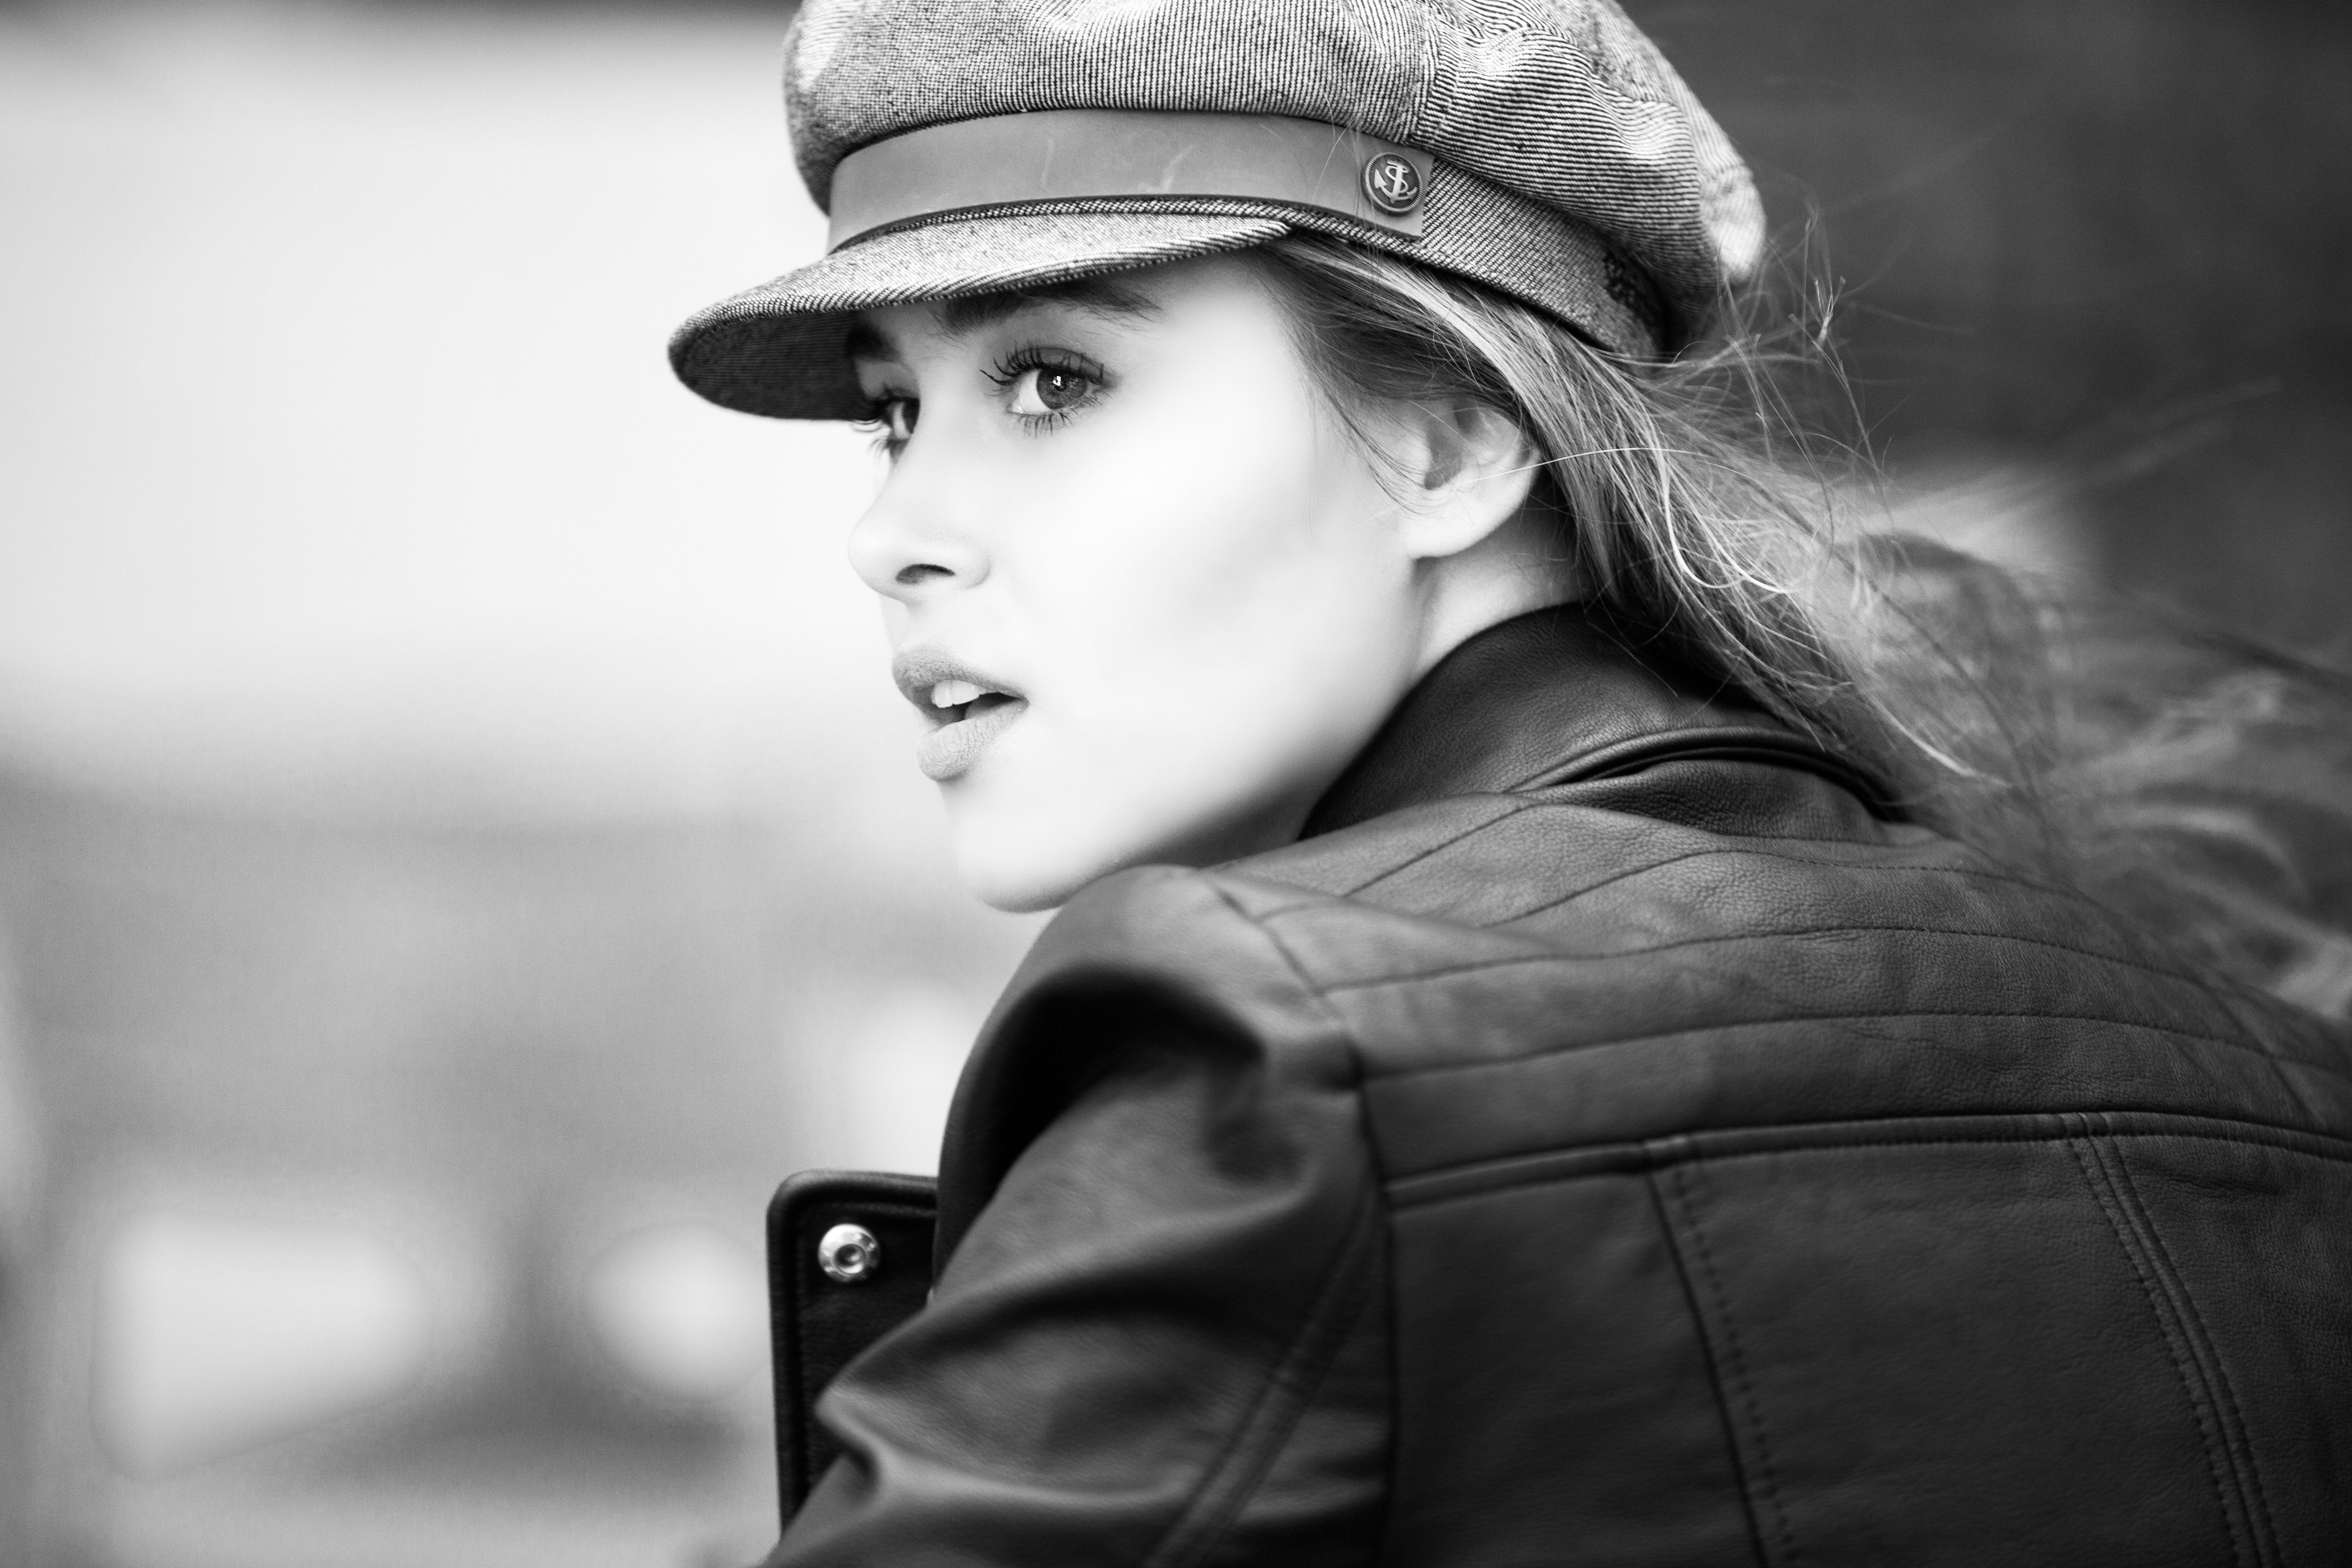 Grayscale photo of woman in black leather jacket · free stock photo